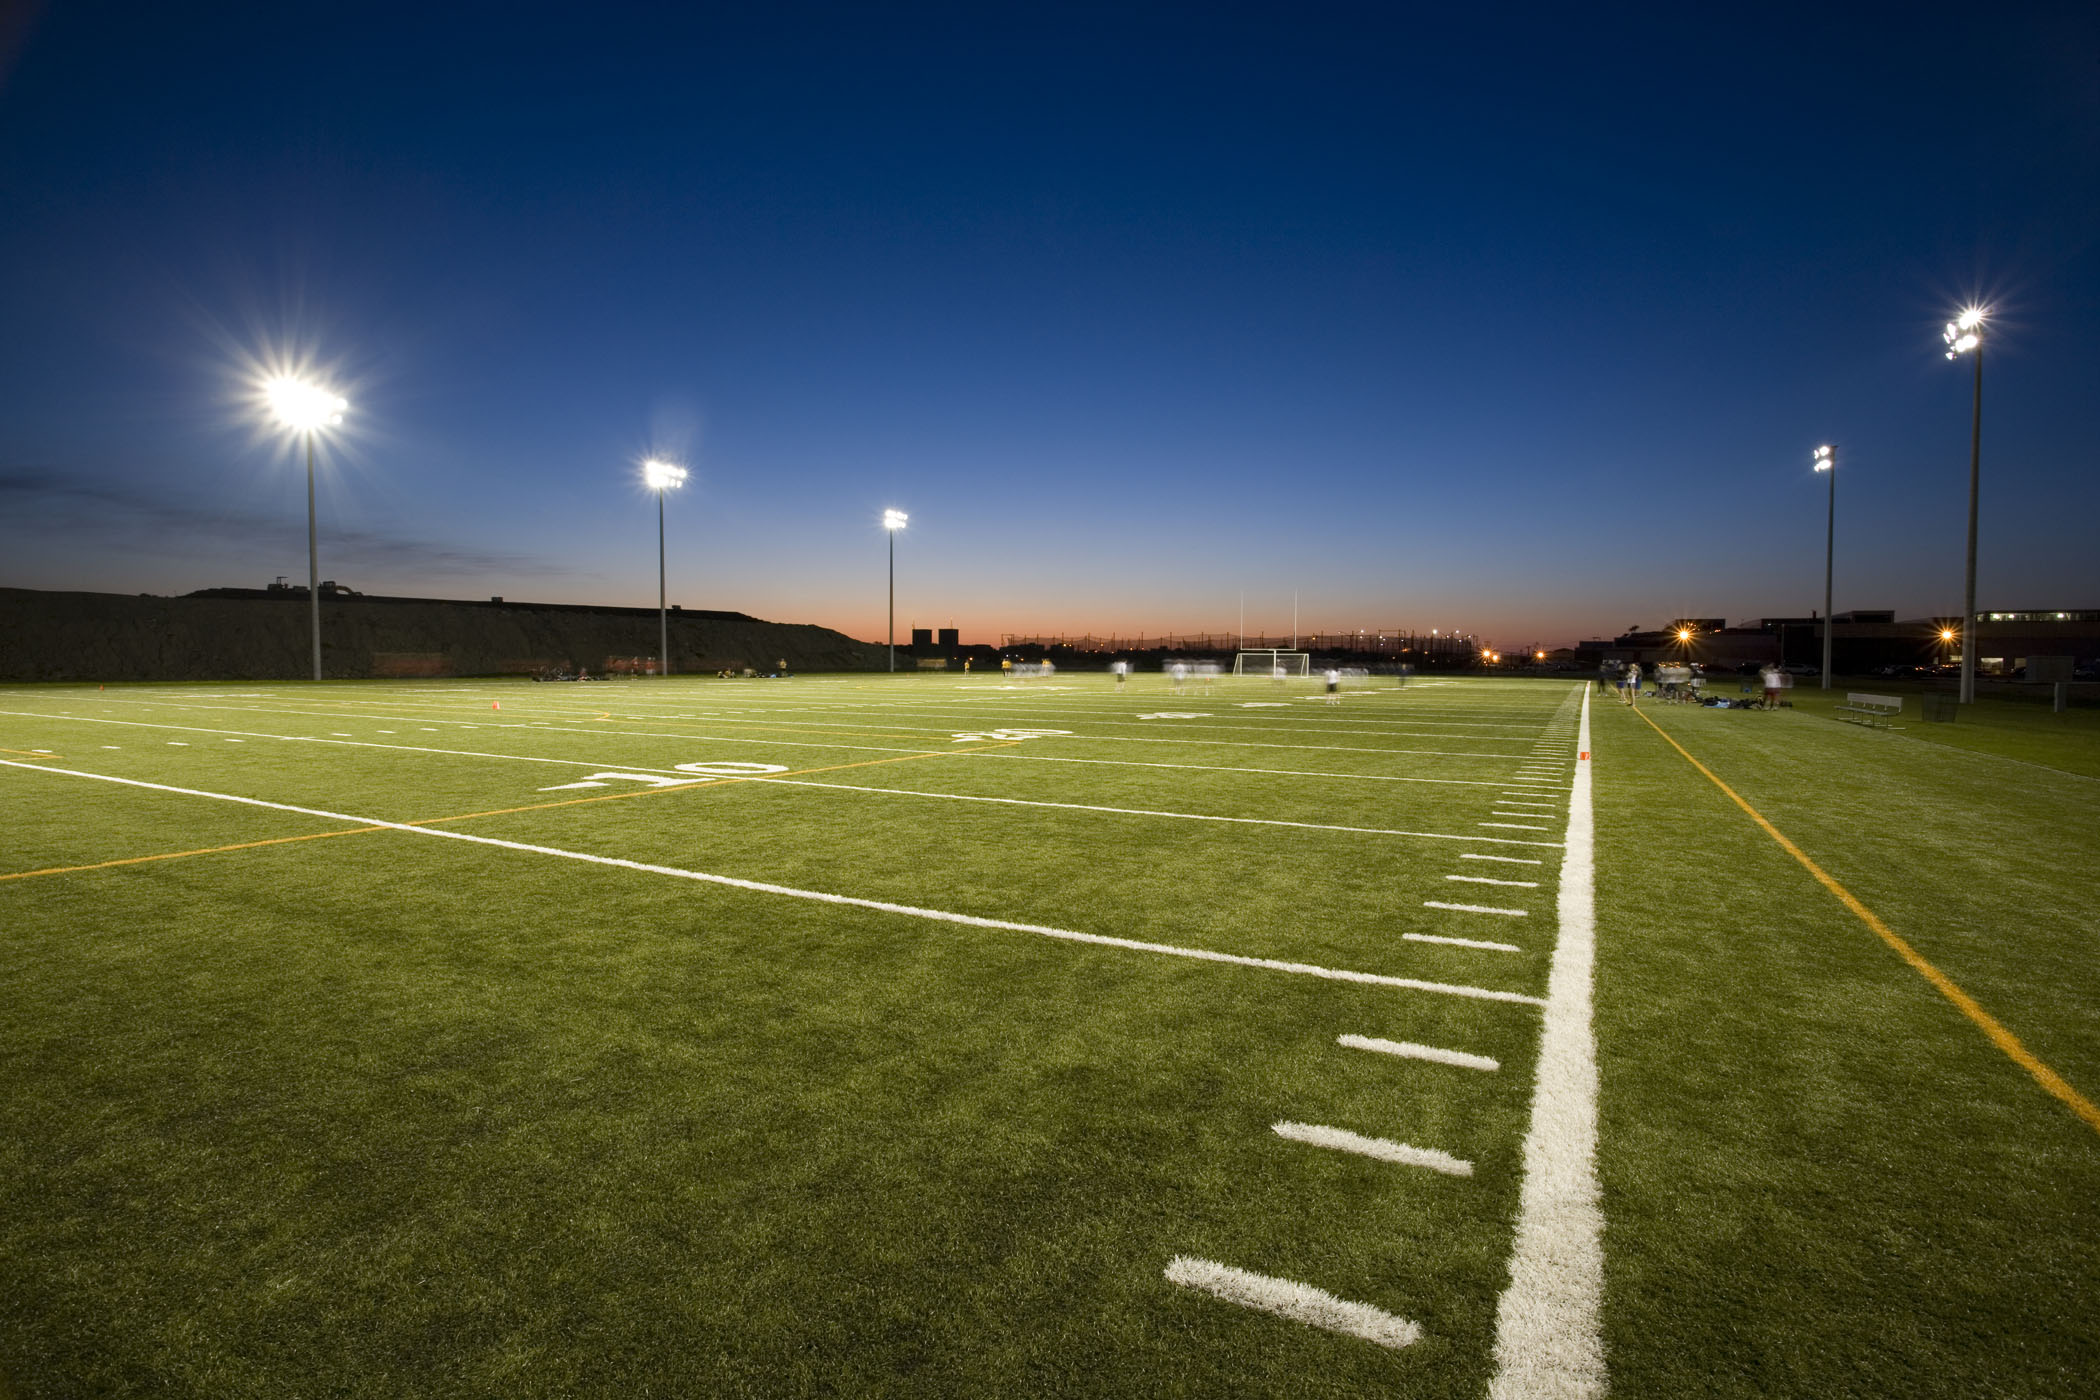 Football Field Wallpaper For Home